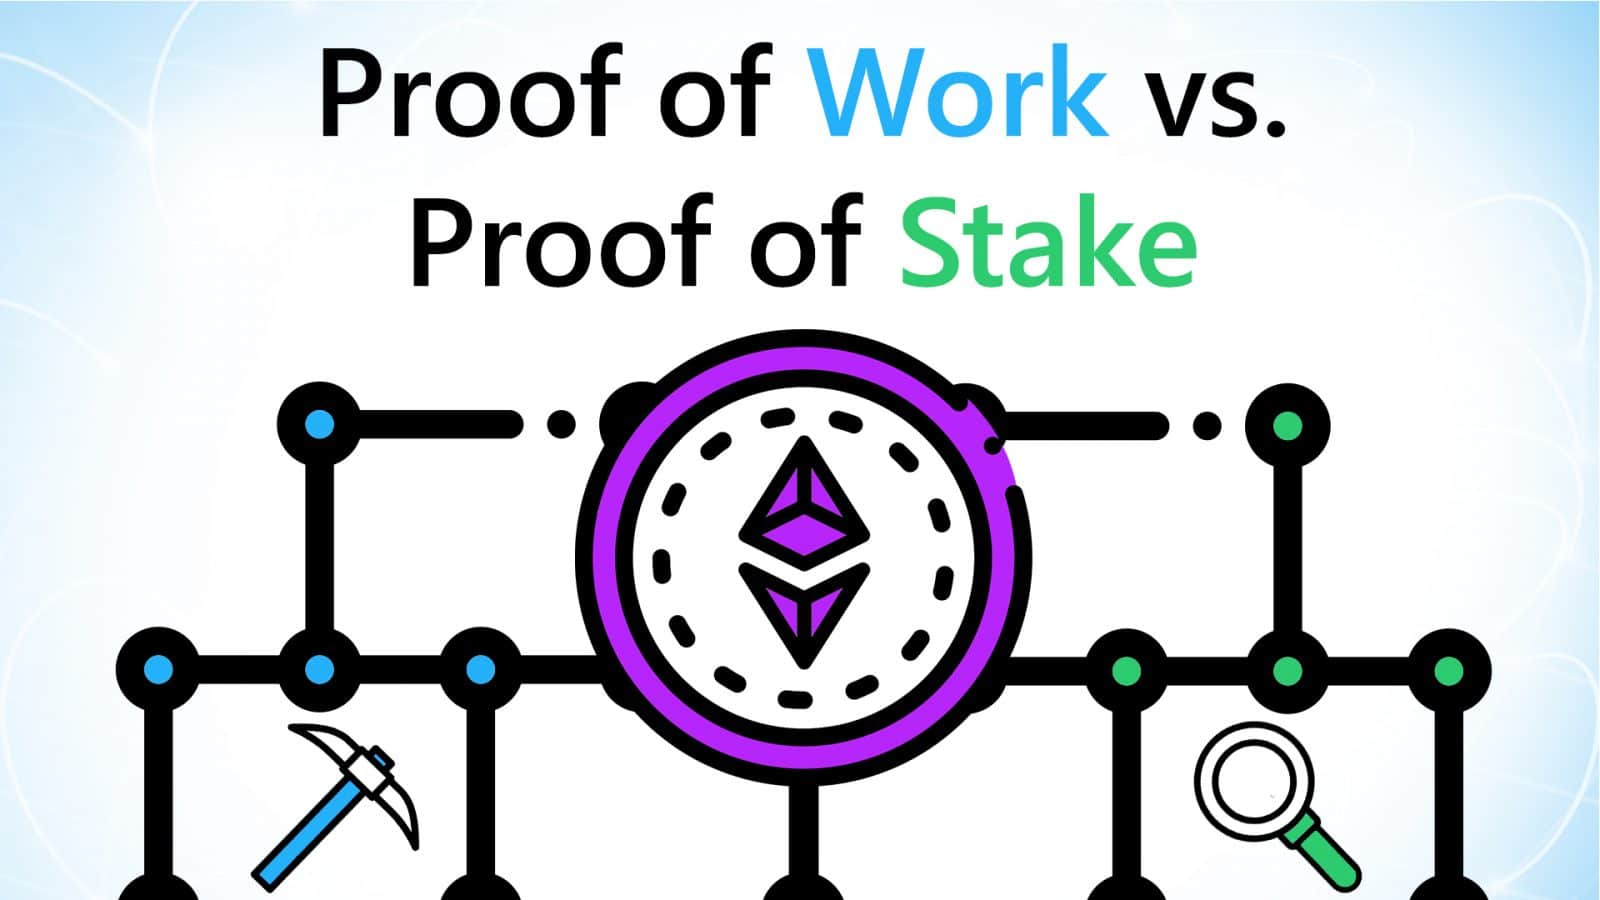 Video Guide: Proof of Work vs. Proof of Stake